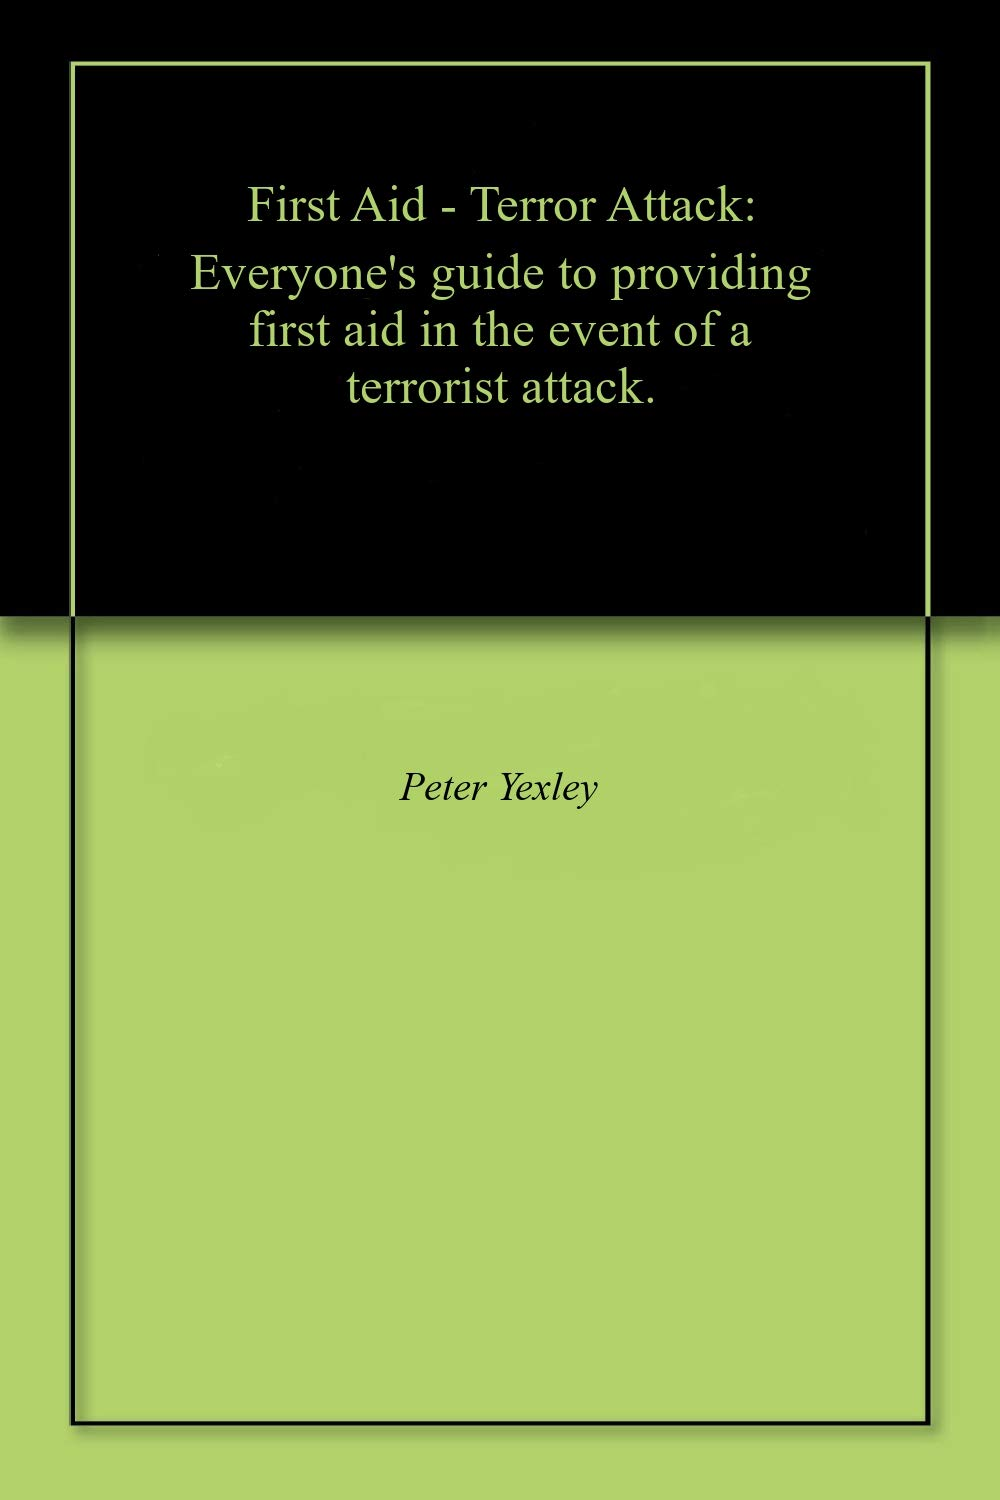 First Aid - Terror Attack: Everyone's guide to providing first aid in the event of a terrorist attack.